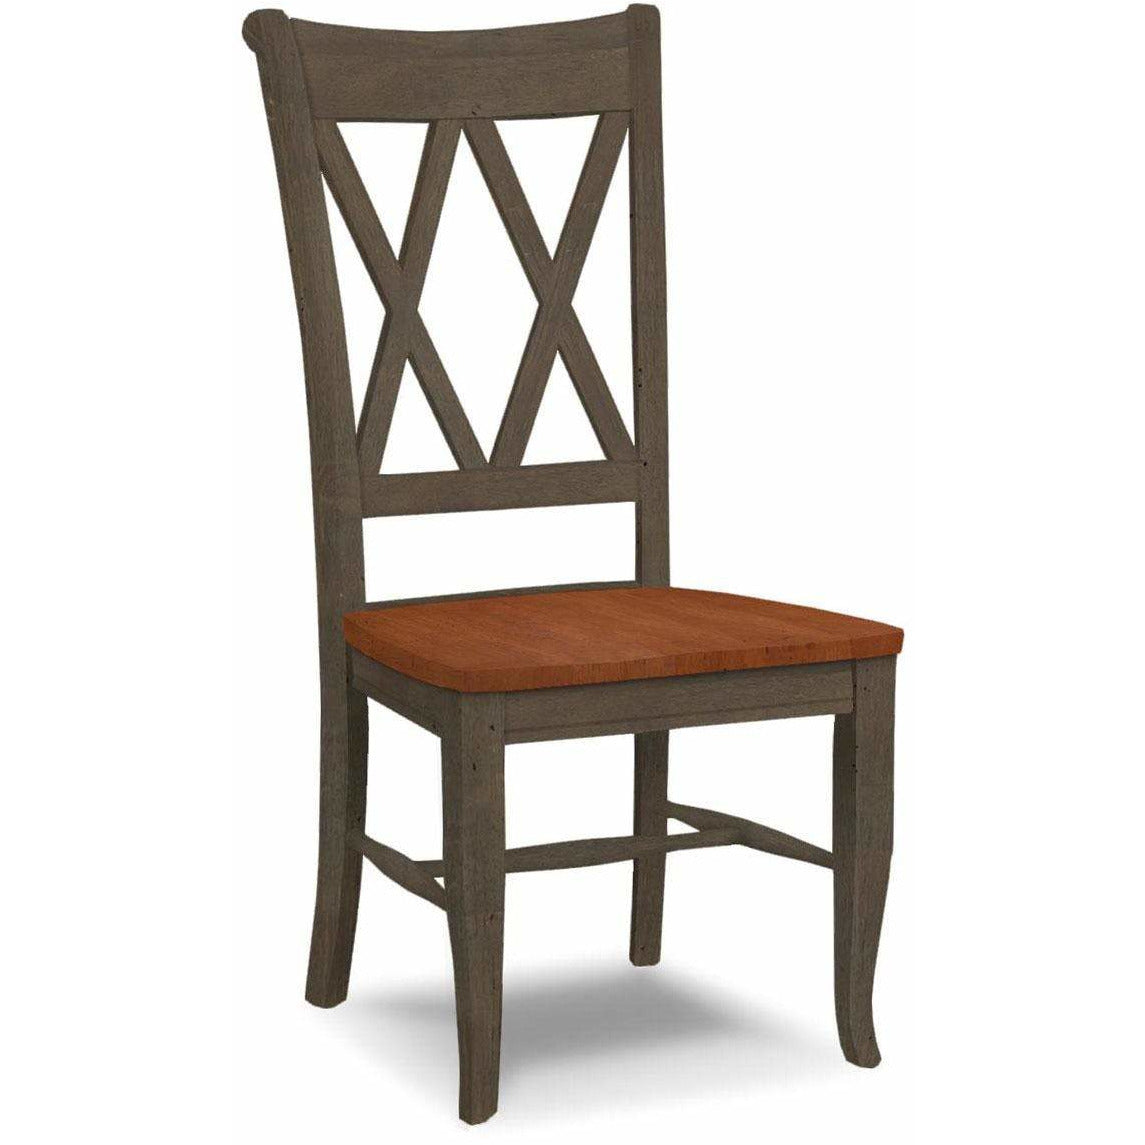 Double X-Back Side Chair